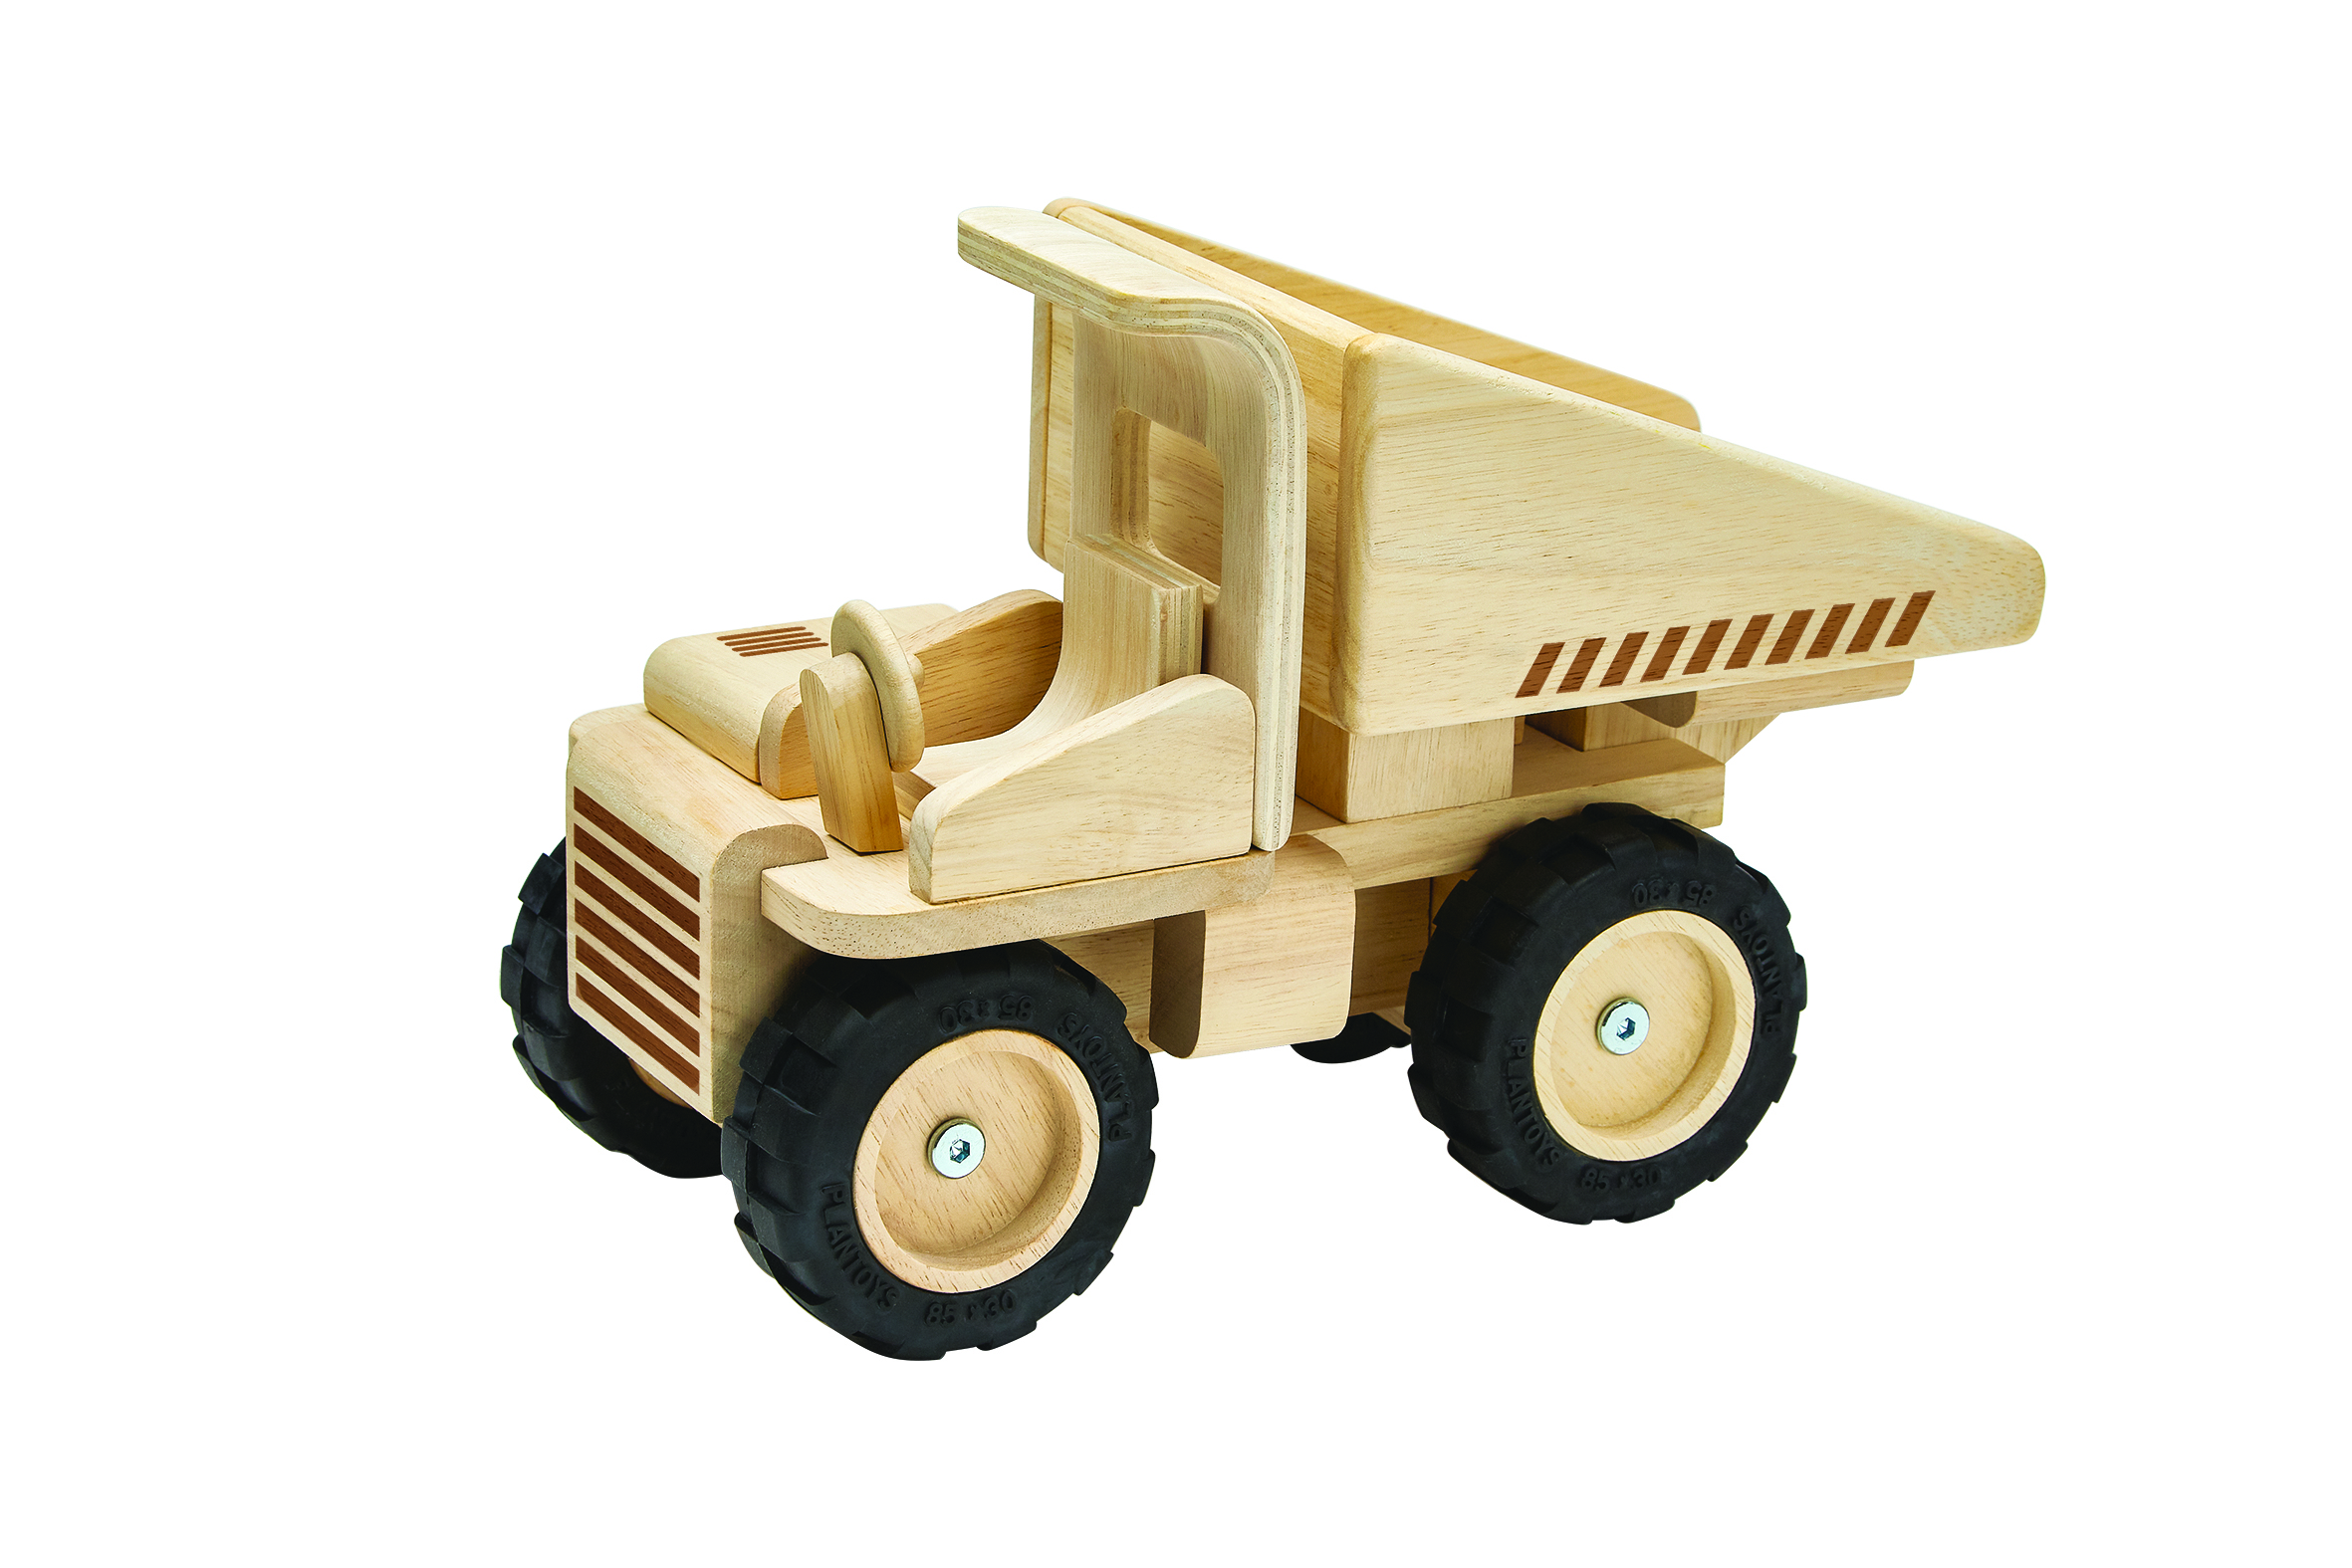 Plan Toys - Limited edition - Dump truck